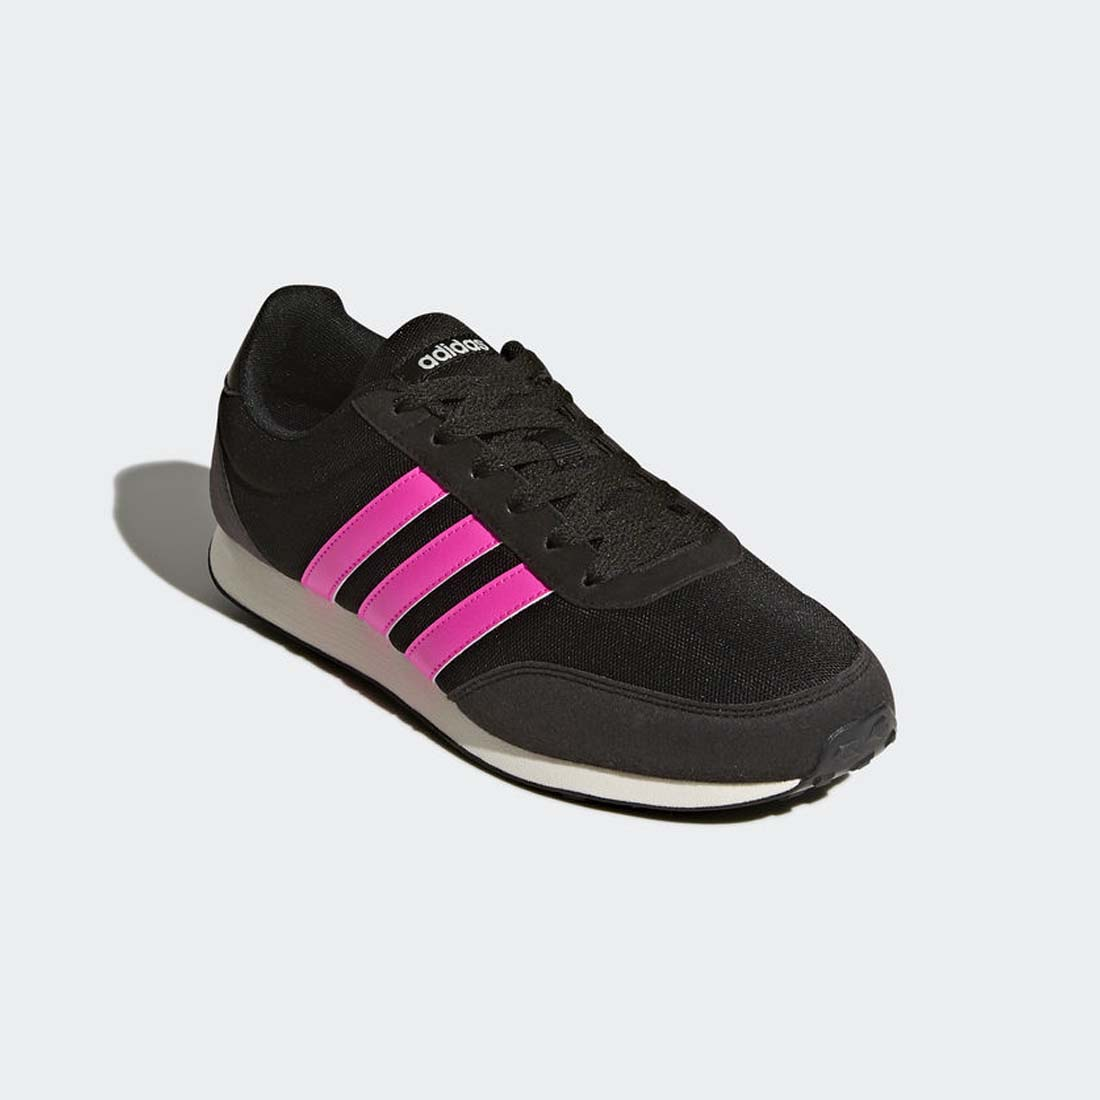 finest selection a0ef1 c679f ... Tenis Adidas Neo V Racer 2.0 Mujer Negros Gamuza BC0112 ...